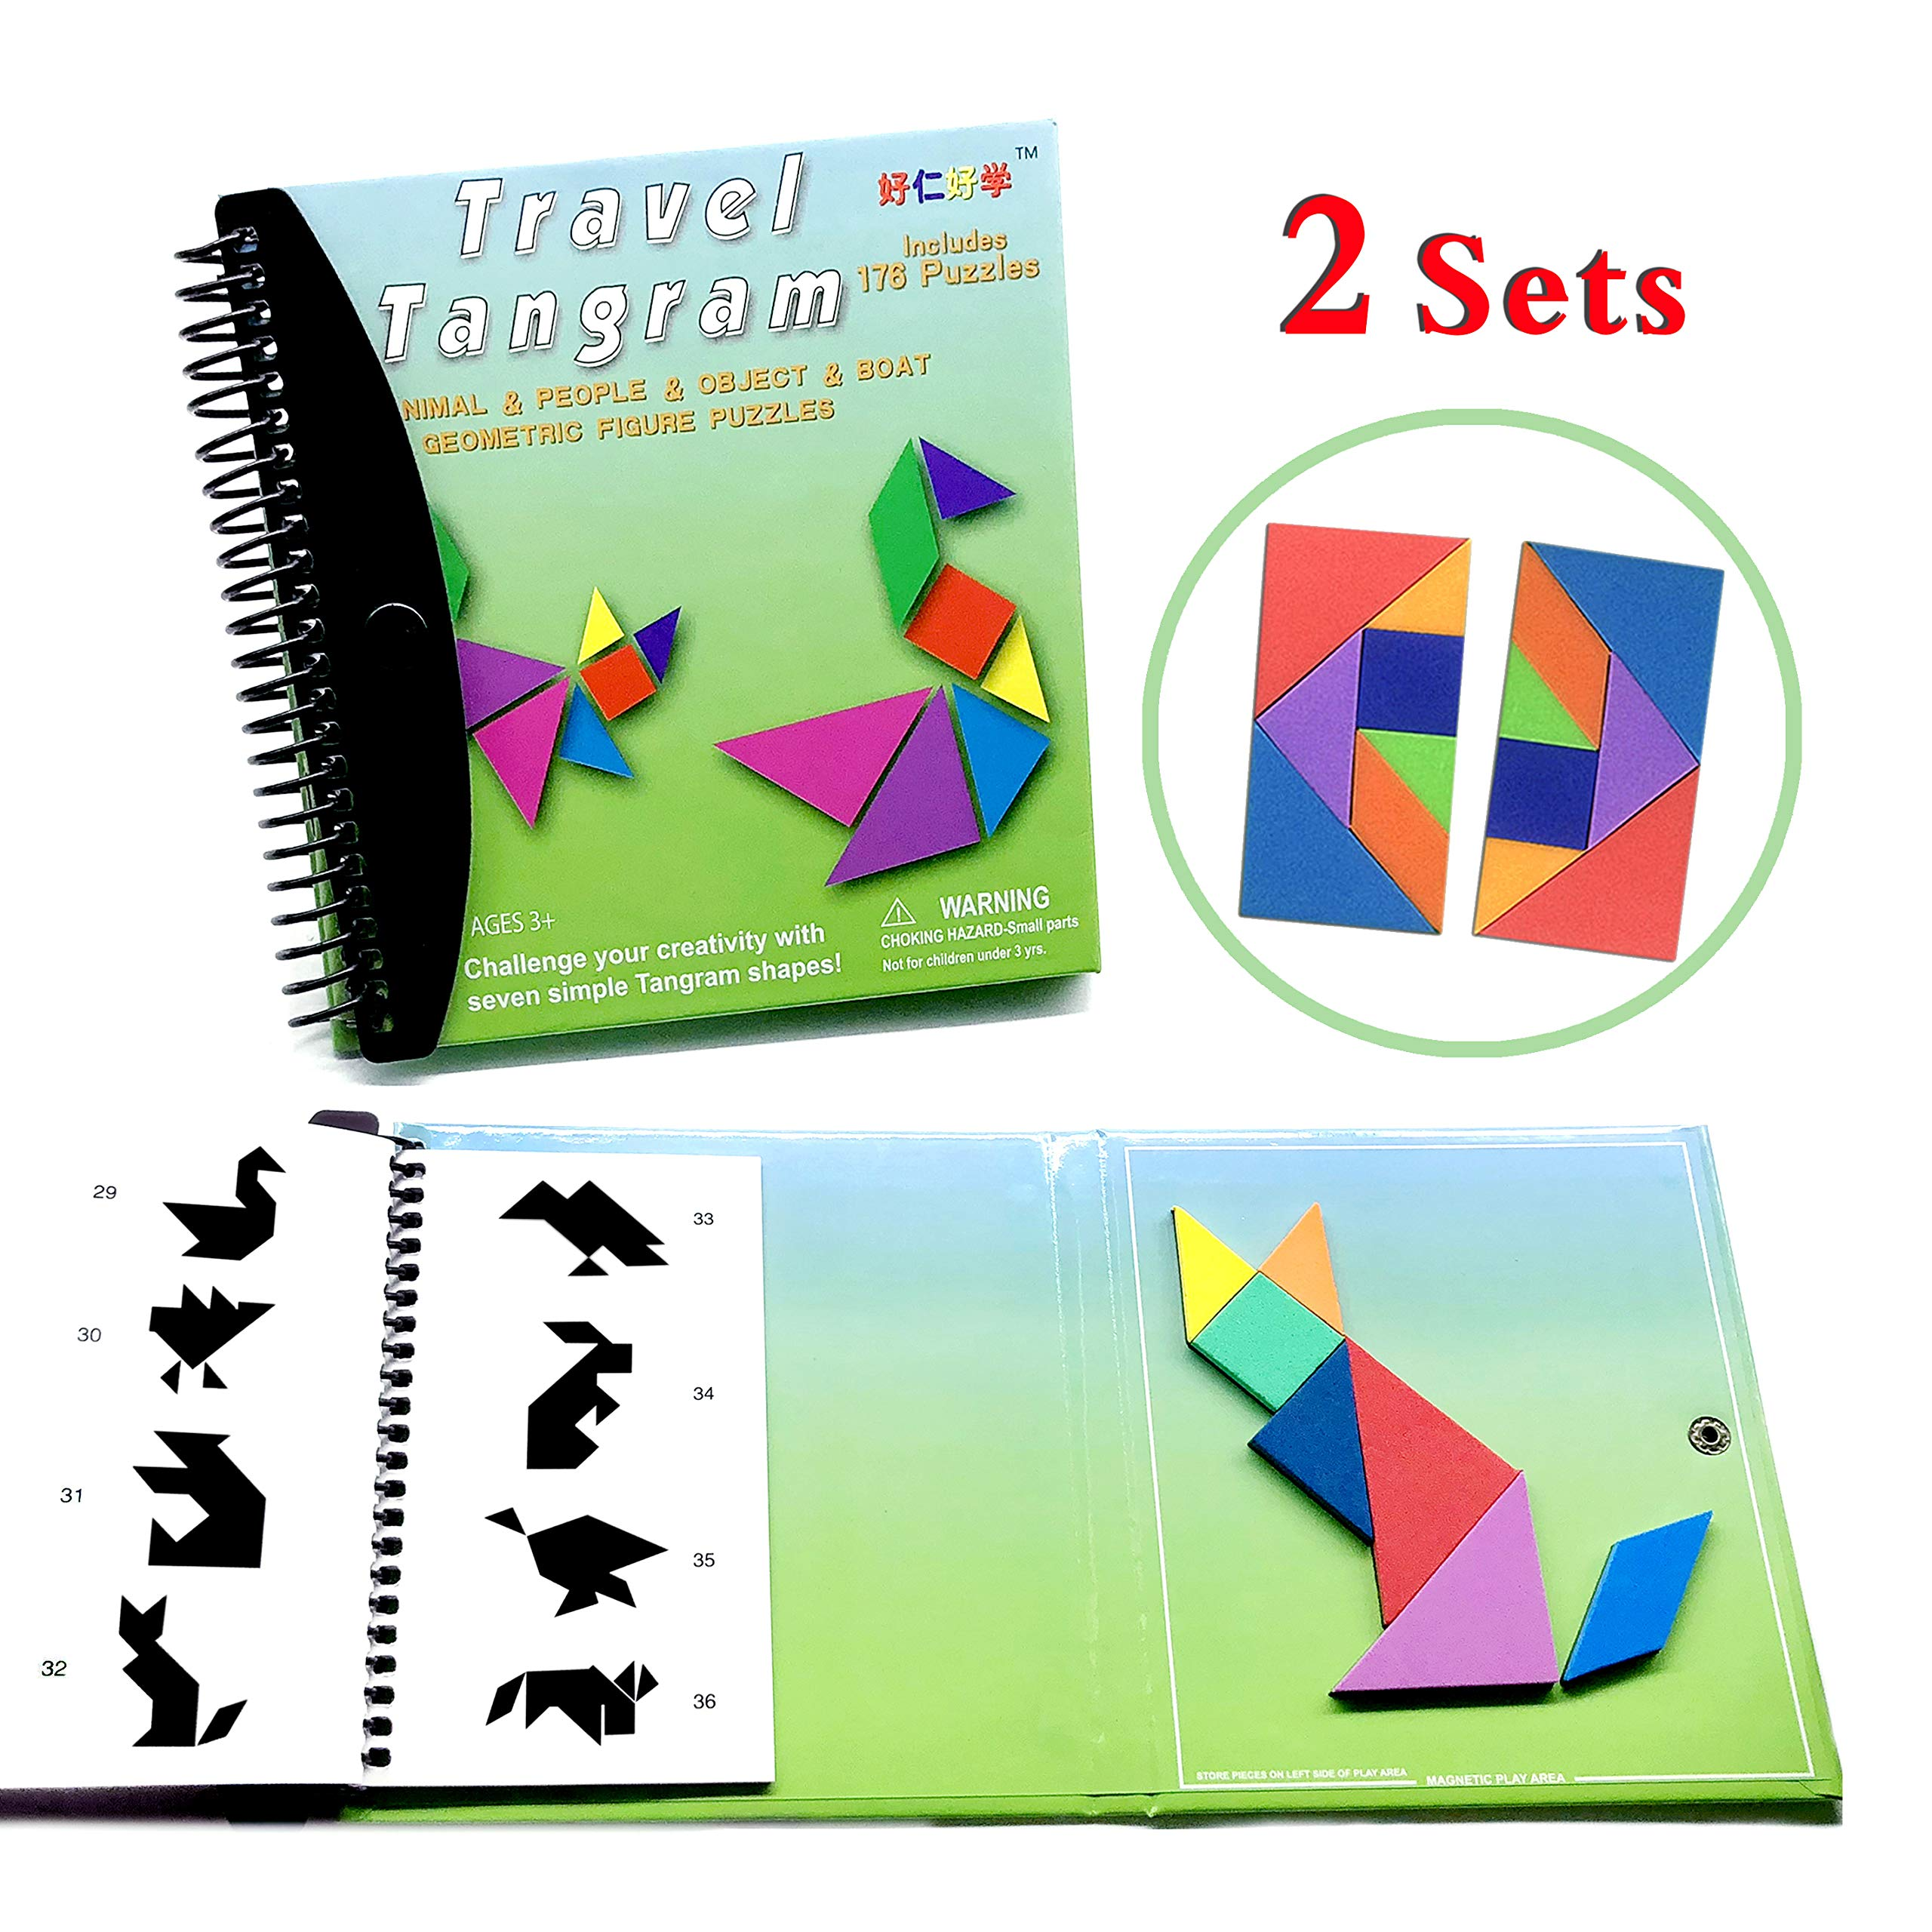 Tangram Game Travel Games 176 Magnetic Puzzle and Questions Build Animals People Objects with 7 Simple Magnetic Colorful Shapes Kid Adult Challenge IQ Educational Book【2 set of Tangrams】 by Wallxin